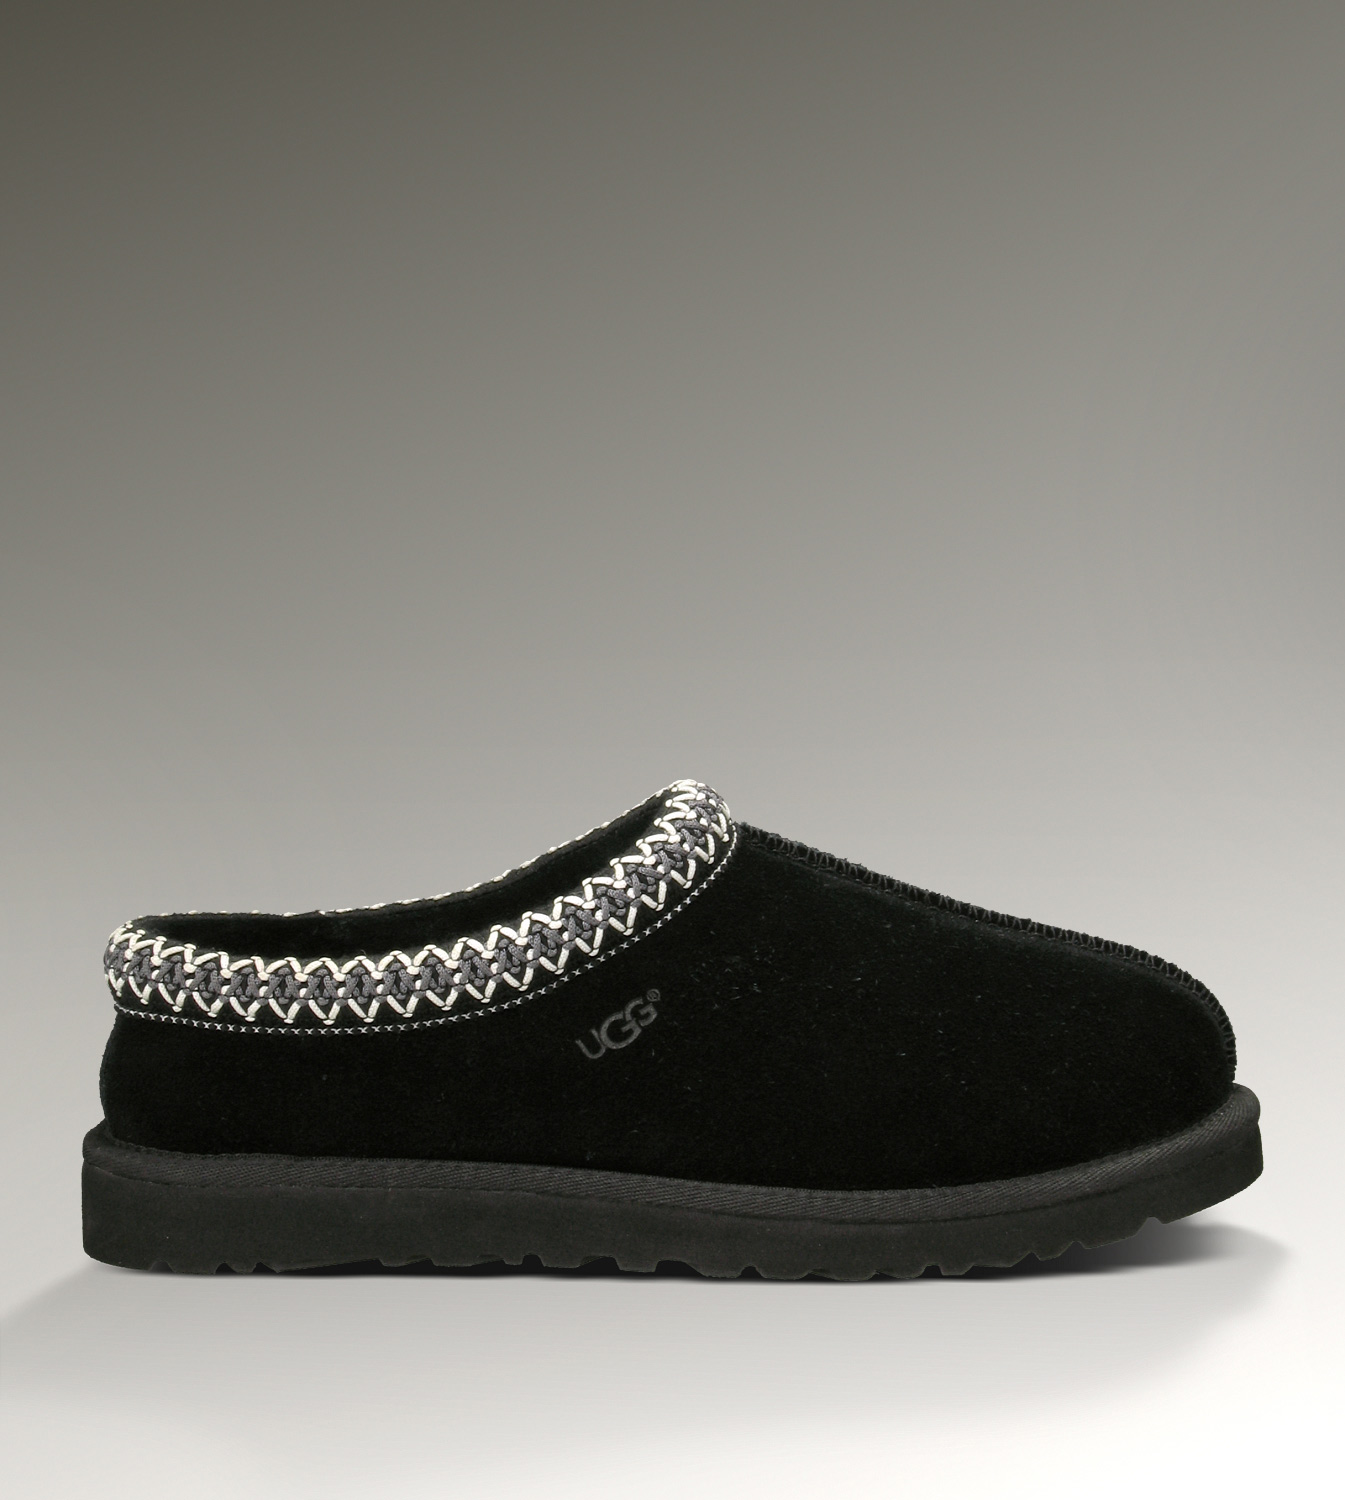 UGG Tasman 5955 Black Slippers